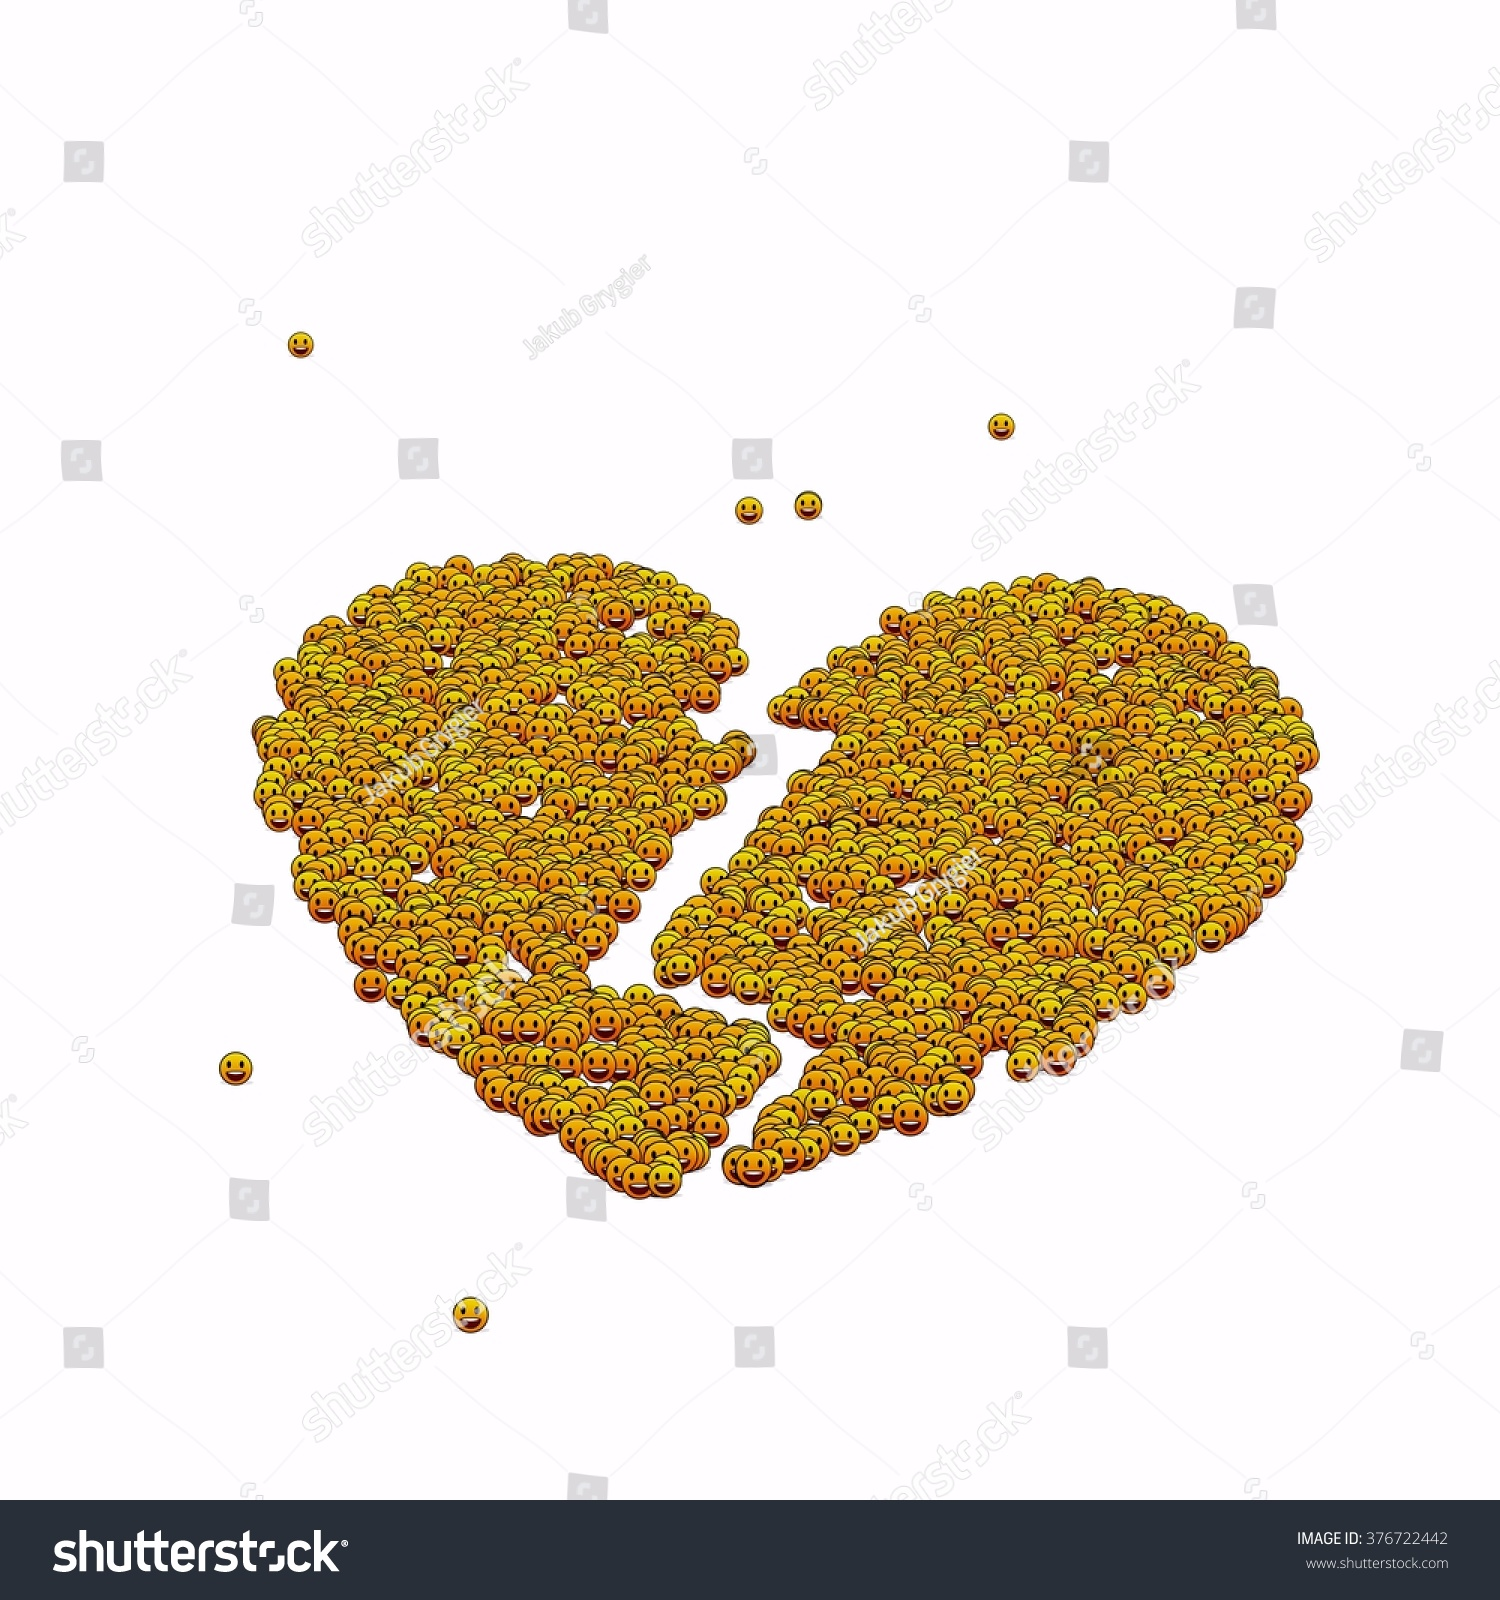 Broken heart symbol glyph out tiny stock illustration 376722442 broken heart symbol glyph out of tiny textures particles representing human and his emotions biocorpaavc